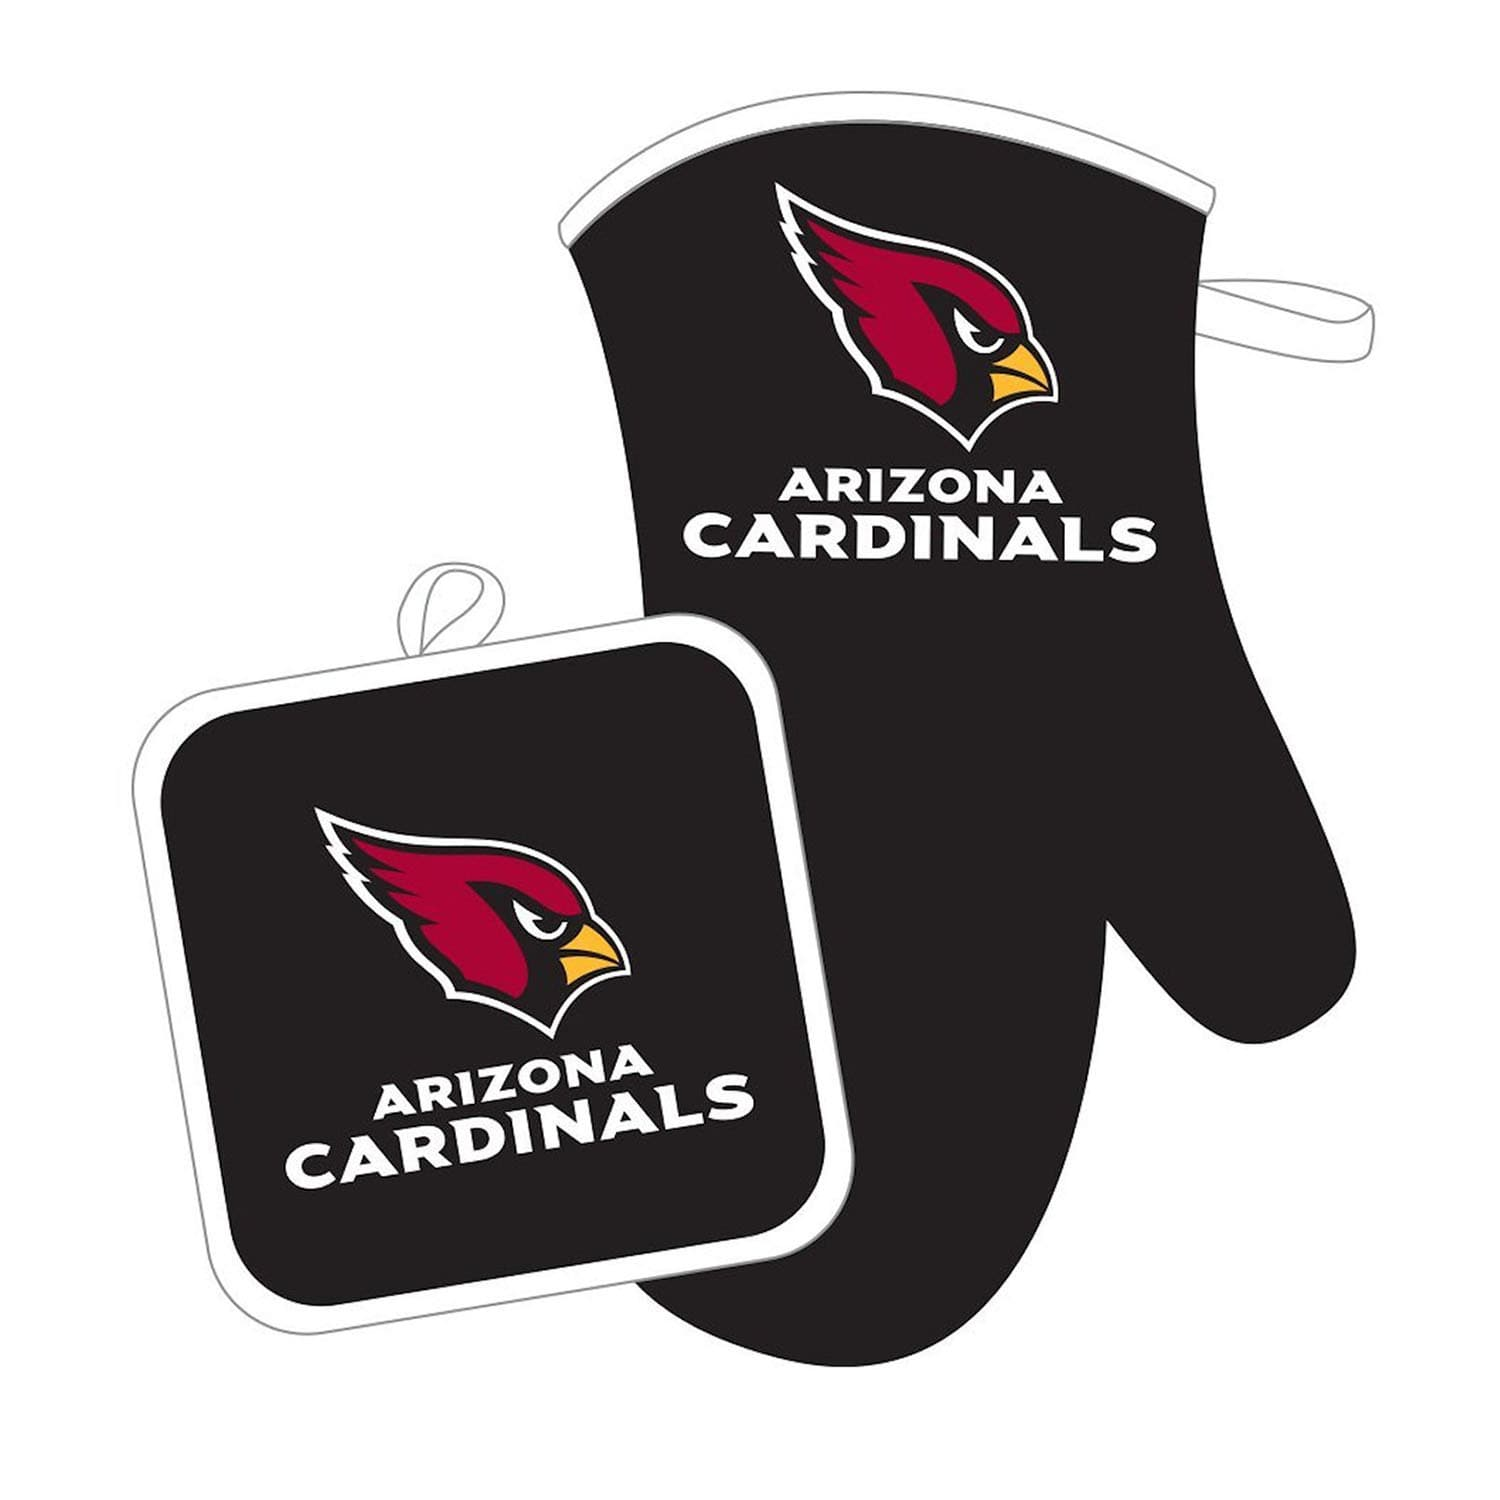 Arizona Cardinals NFL Oven Mitt and Pot Holder Set by Pro Specialties Group